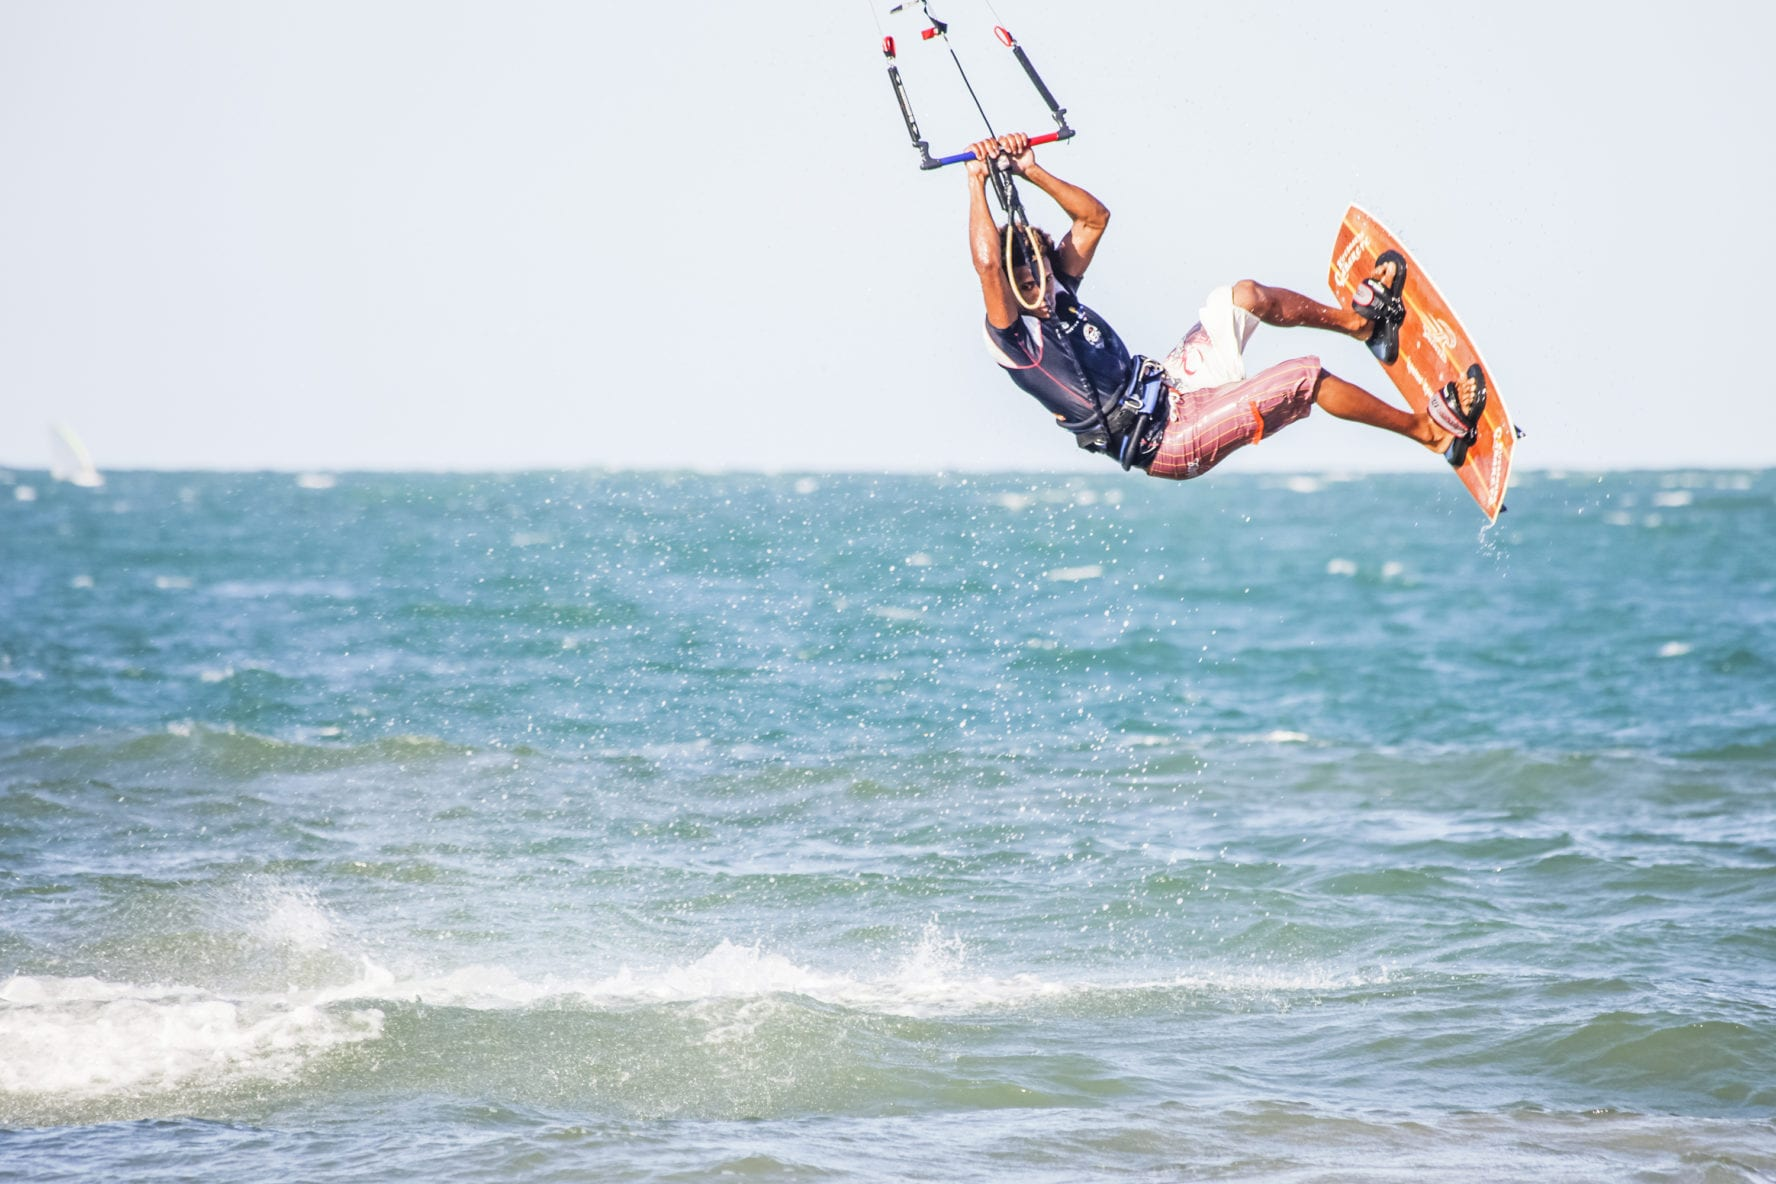 Kitesurfing in Cabarete, Dominican Republic